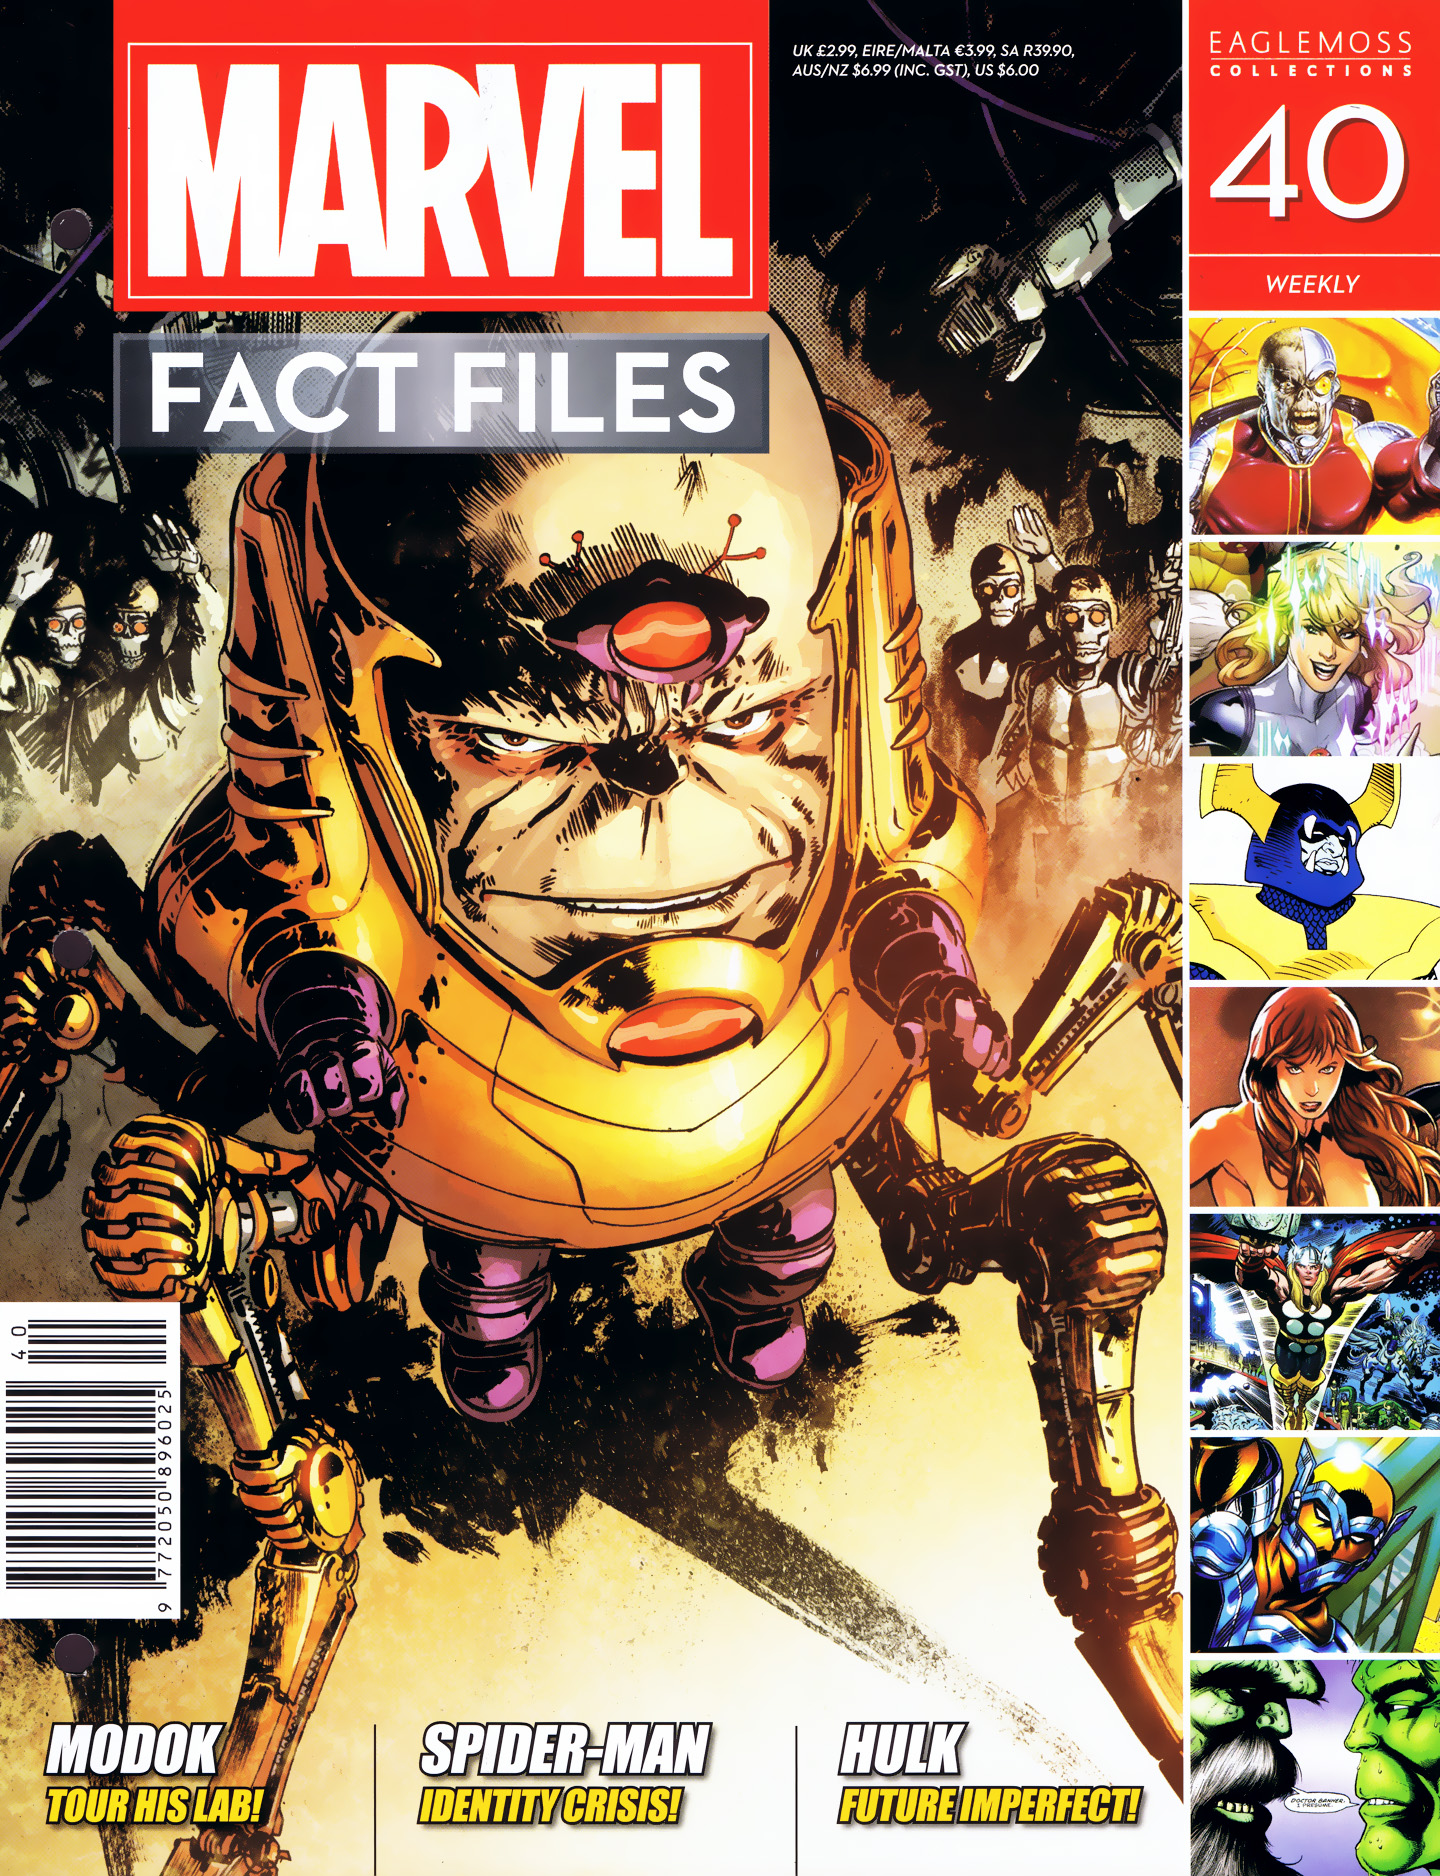 Marvel Fact Files 40 Page 1